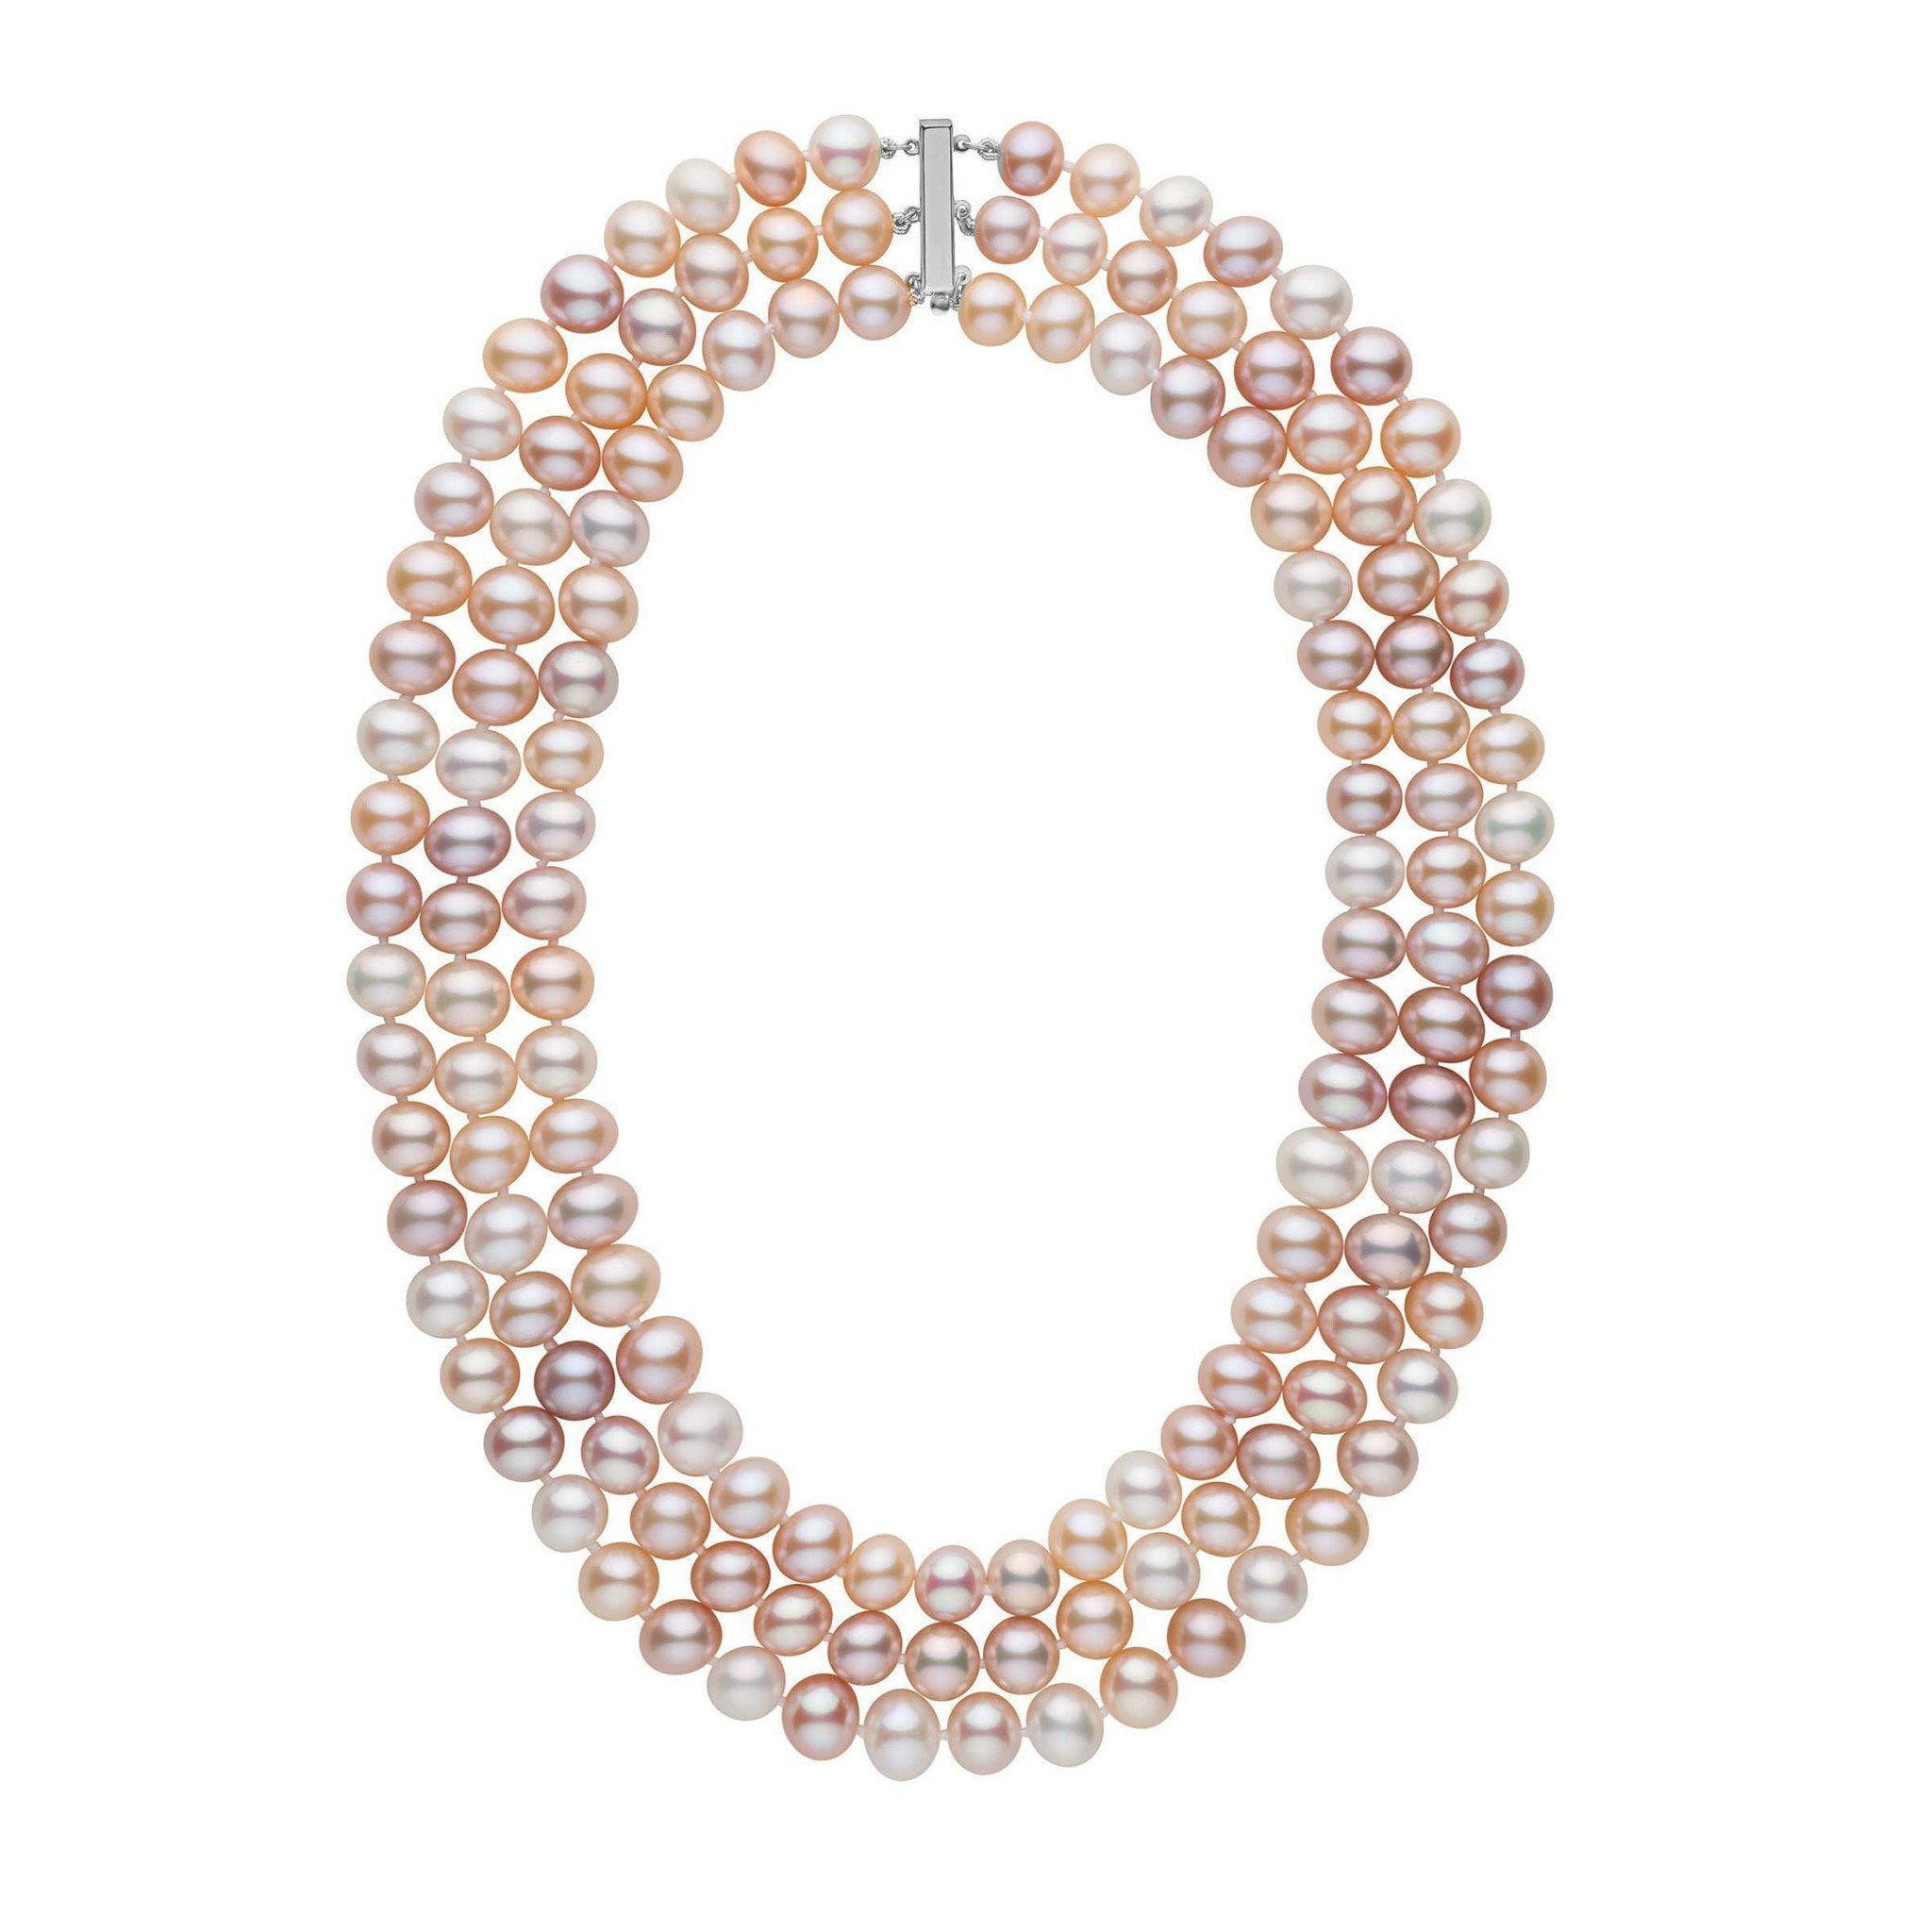 Triple Strand 8.5-9.0 mm AA+ Multicolor Freshwater Pearl Necklace